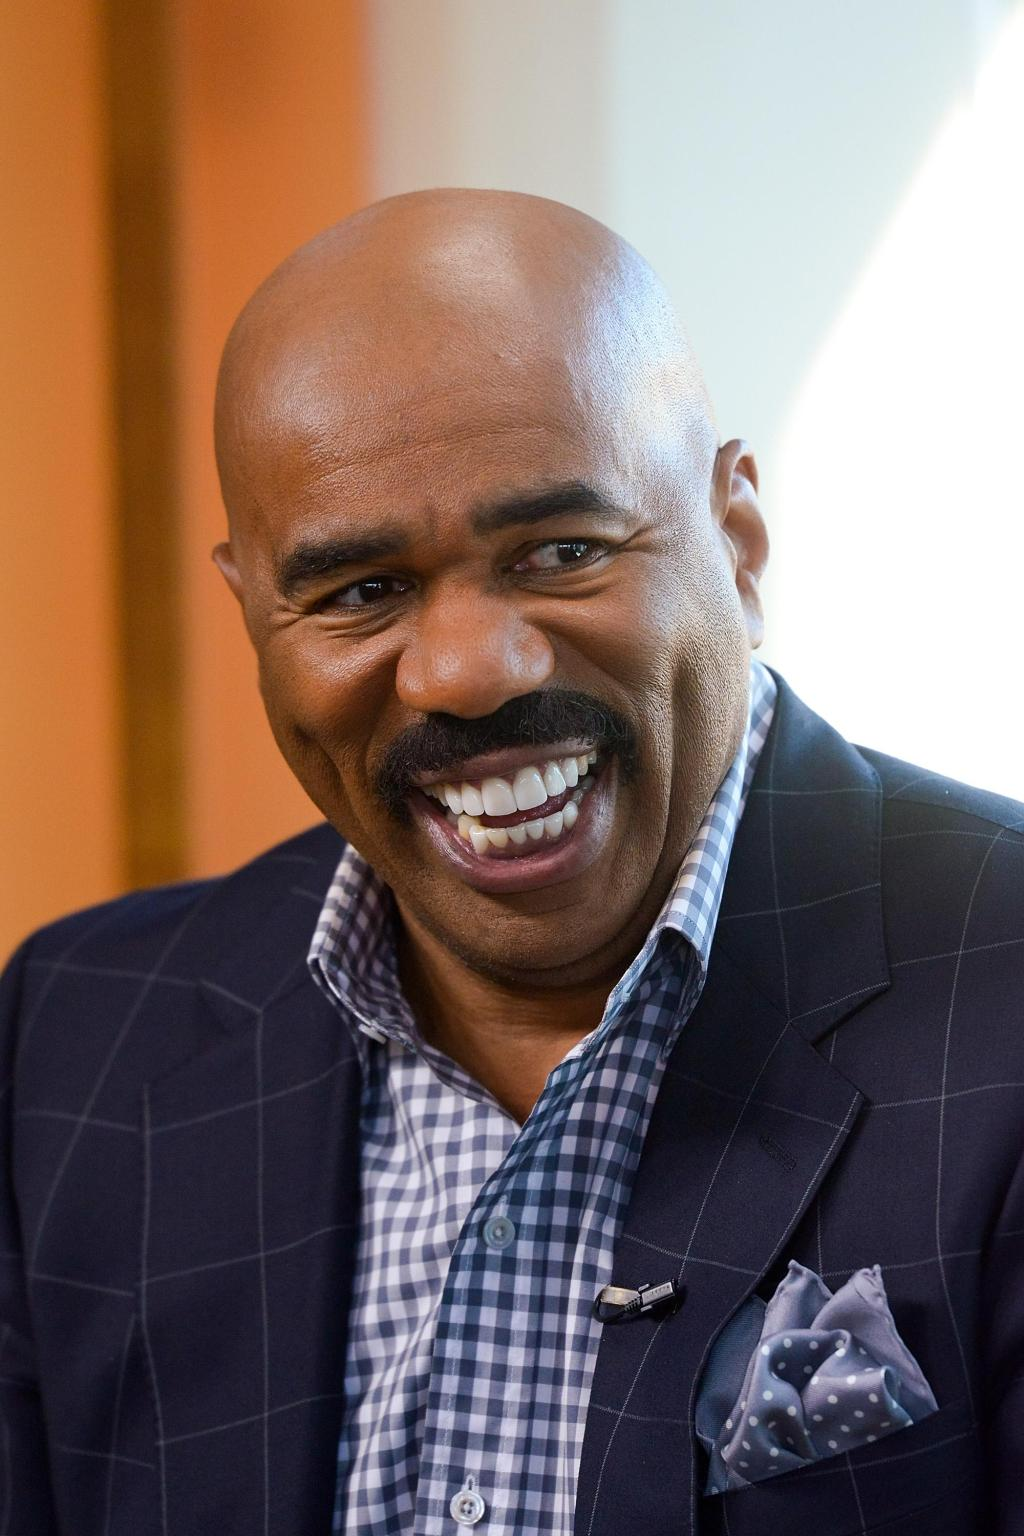 Steve Harvey, Erin Wasson And Howie Mandel At 'Extra'